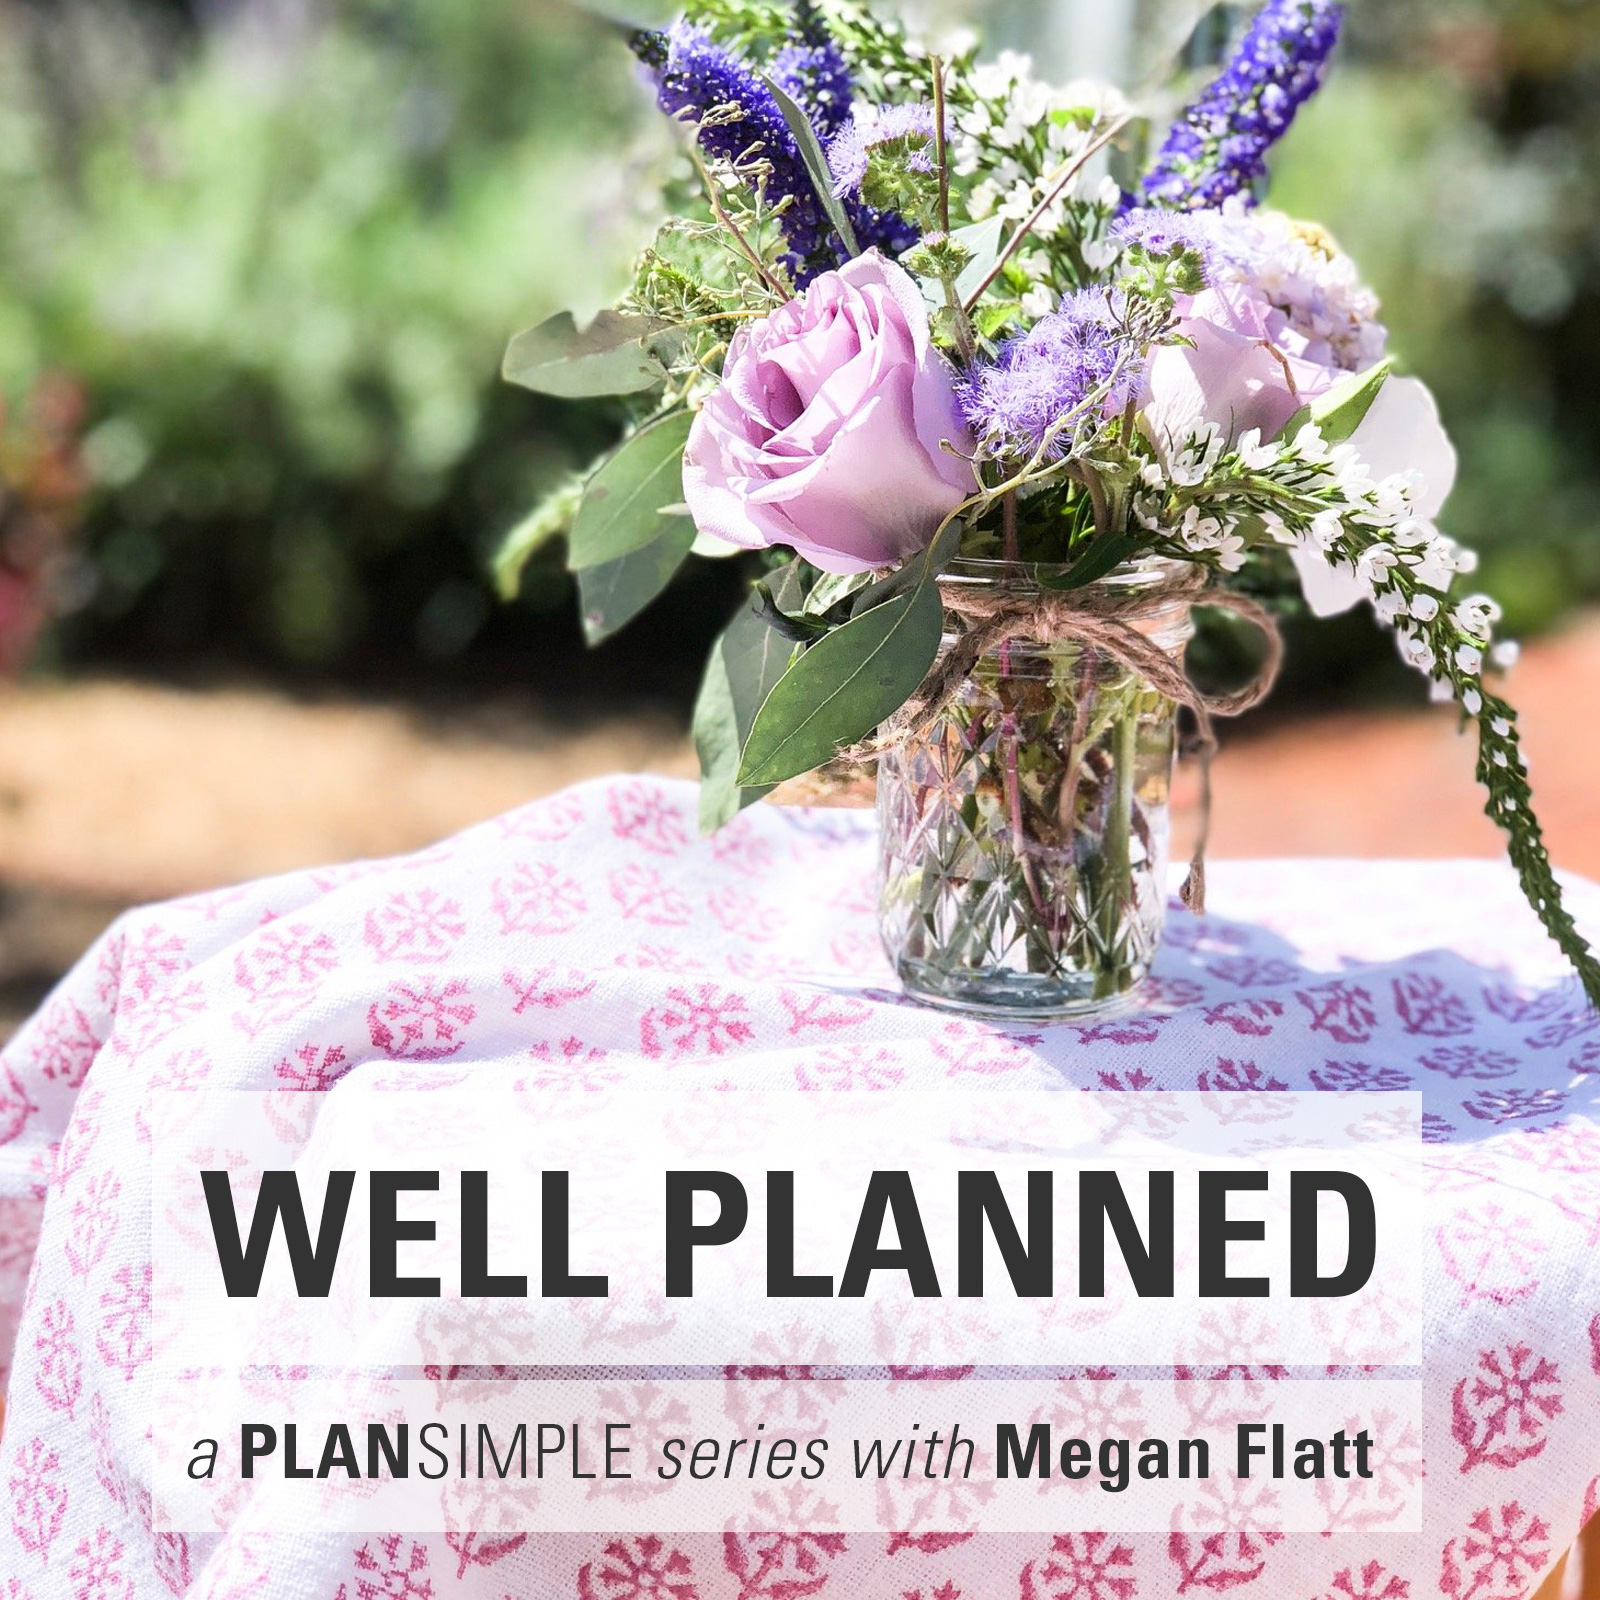 Starting A Business On The Well Planned Series With Megan Flatt